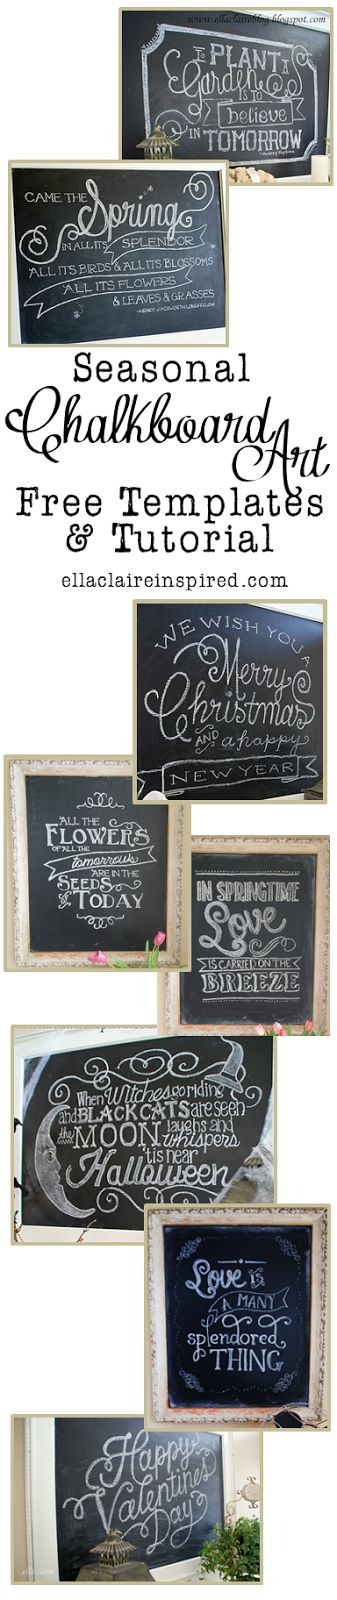 my seasonal chalkboard art roundup free templates and tutorial